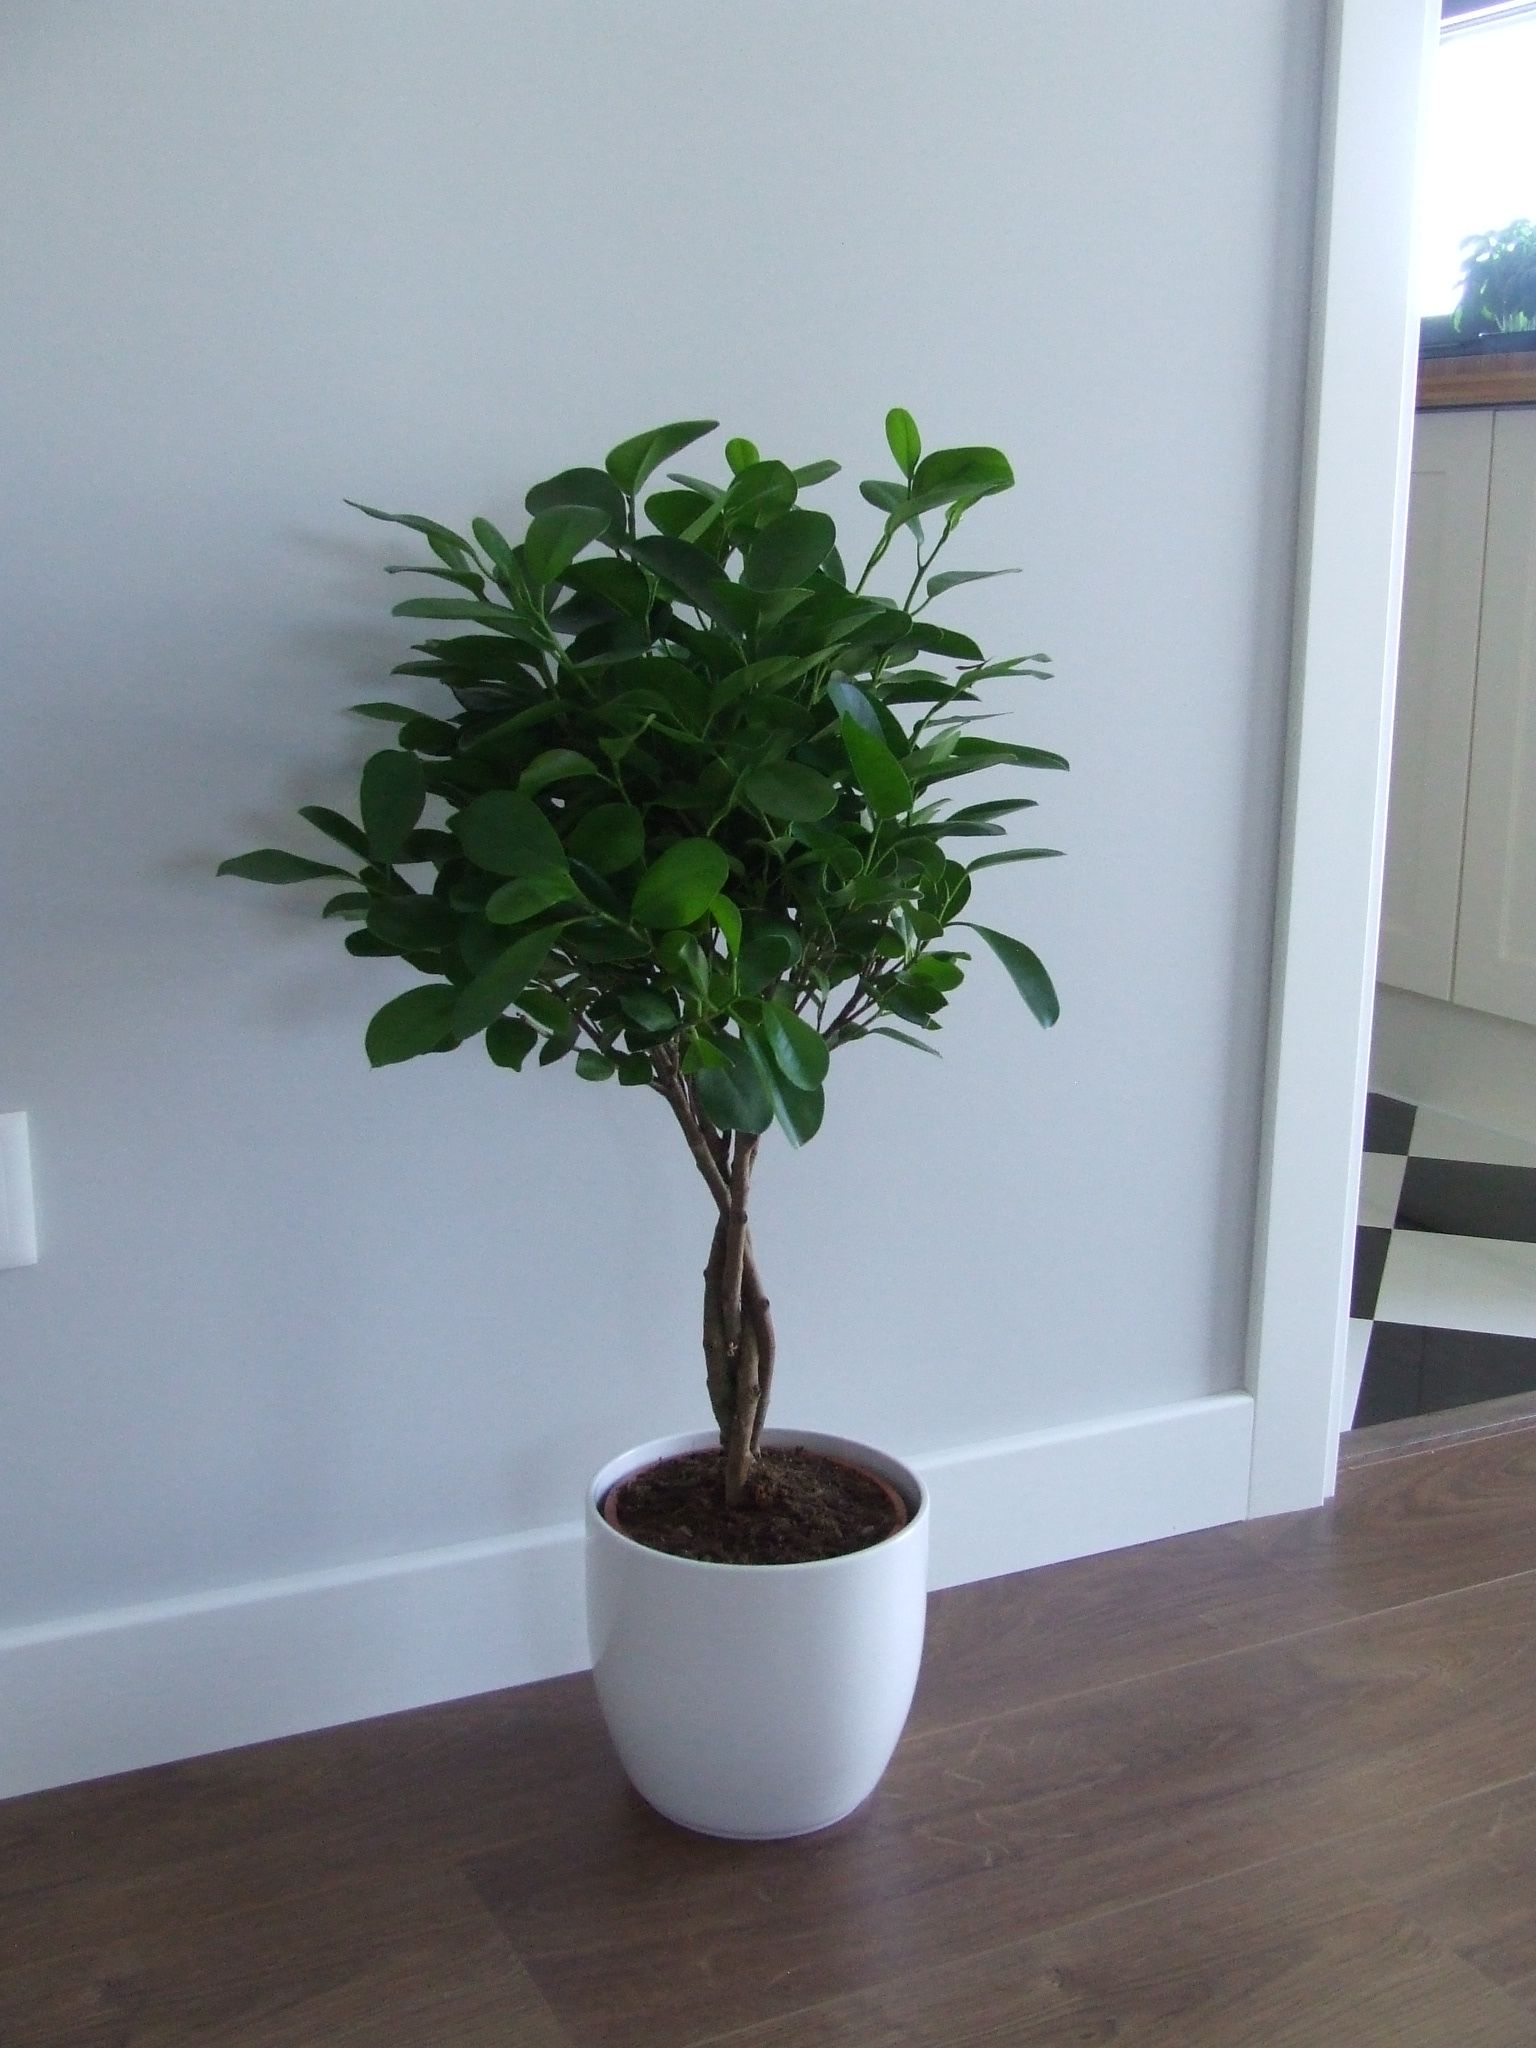 Ficus Microcarpa Moclame (Bought At Ikea Store)